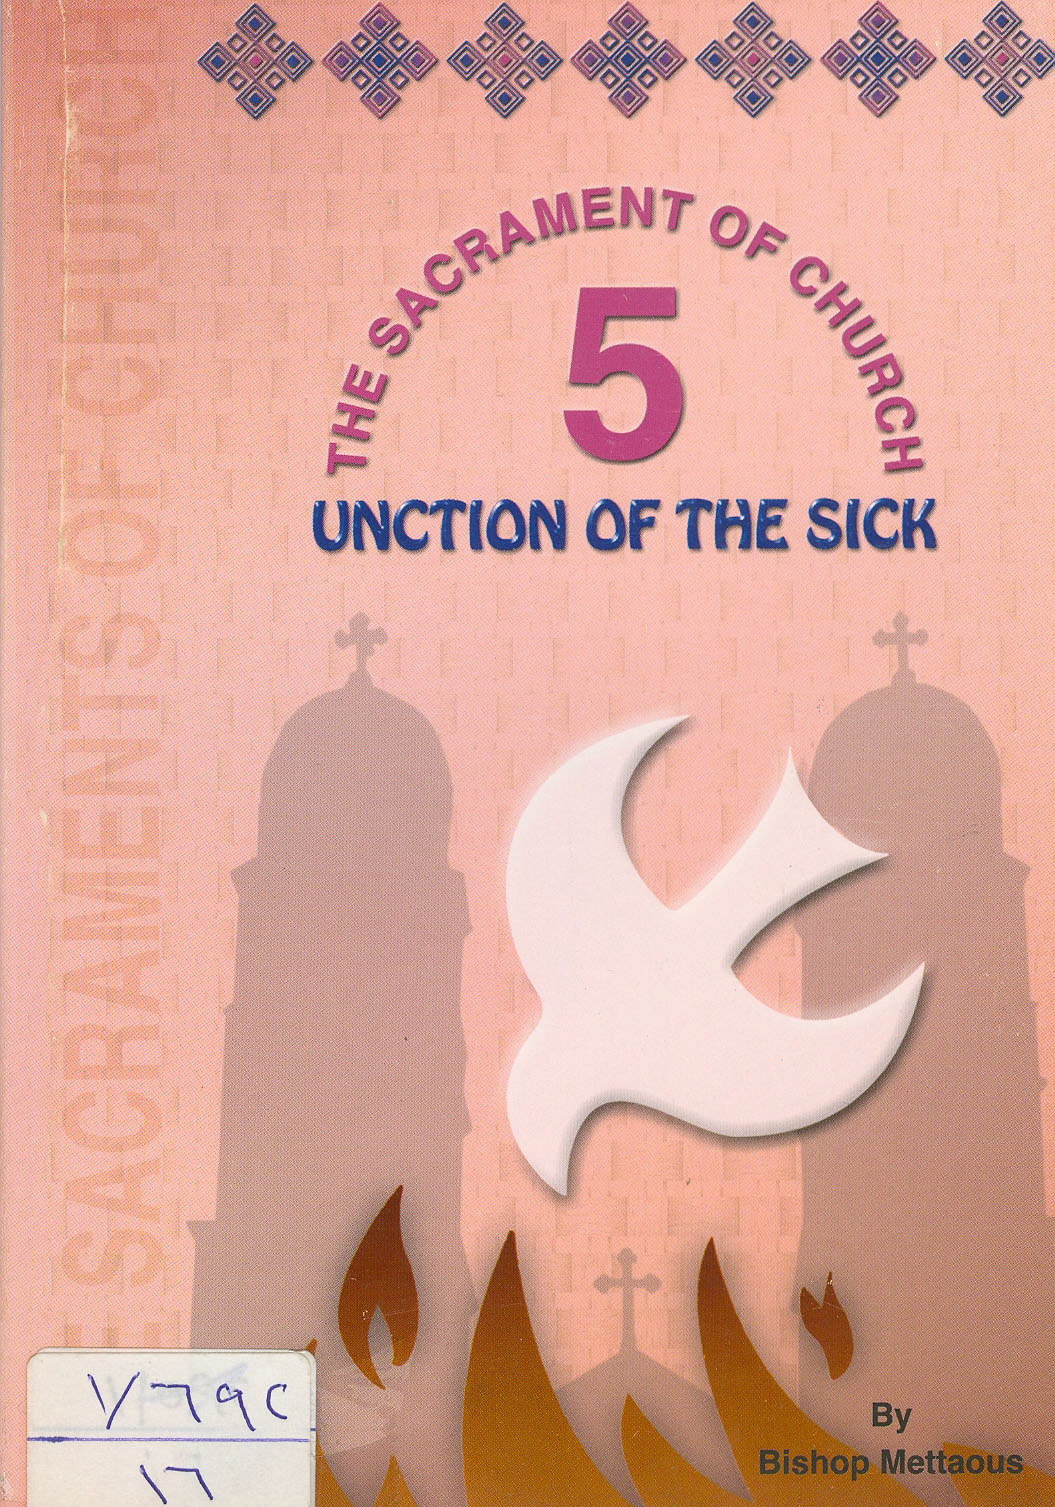 Cover of SACRAMENT UNCTION OF THE SICK